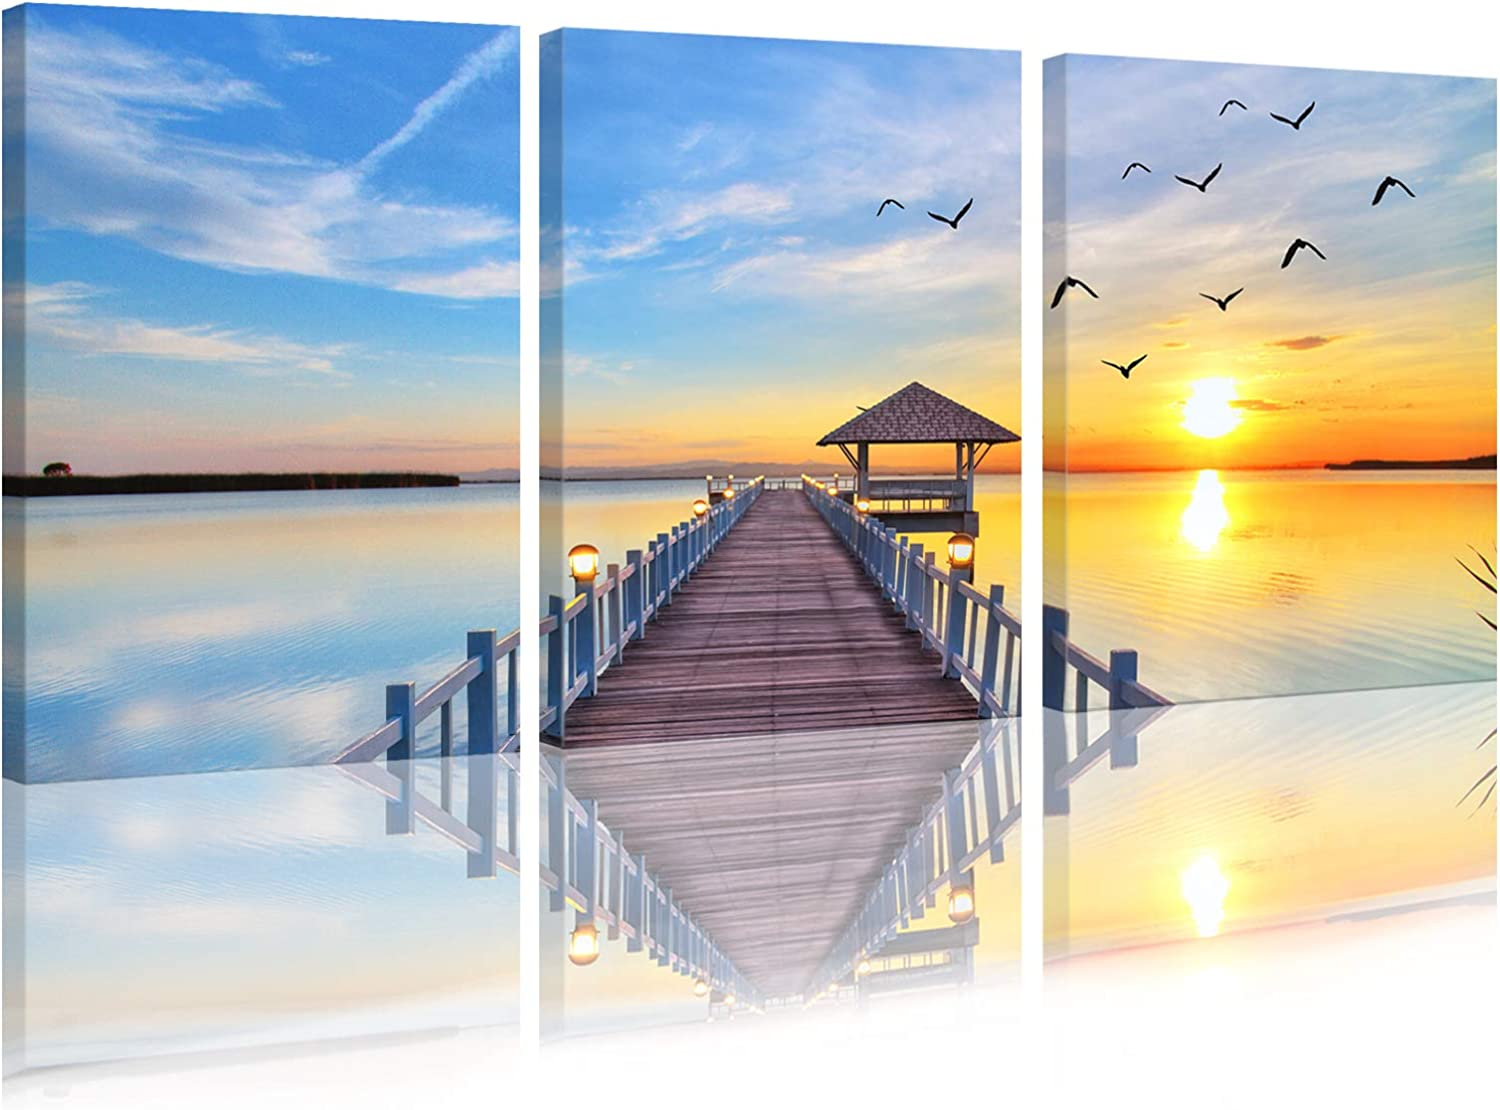 3 Piece Wall Art Canvas Wall Art,Sunset Landscape Prints Picture,Blue Sky Seascape Wharf Artwork Painting,Framed Modern Giclee Wall Decor for Living Room 16